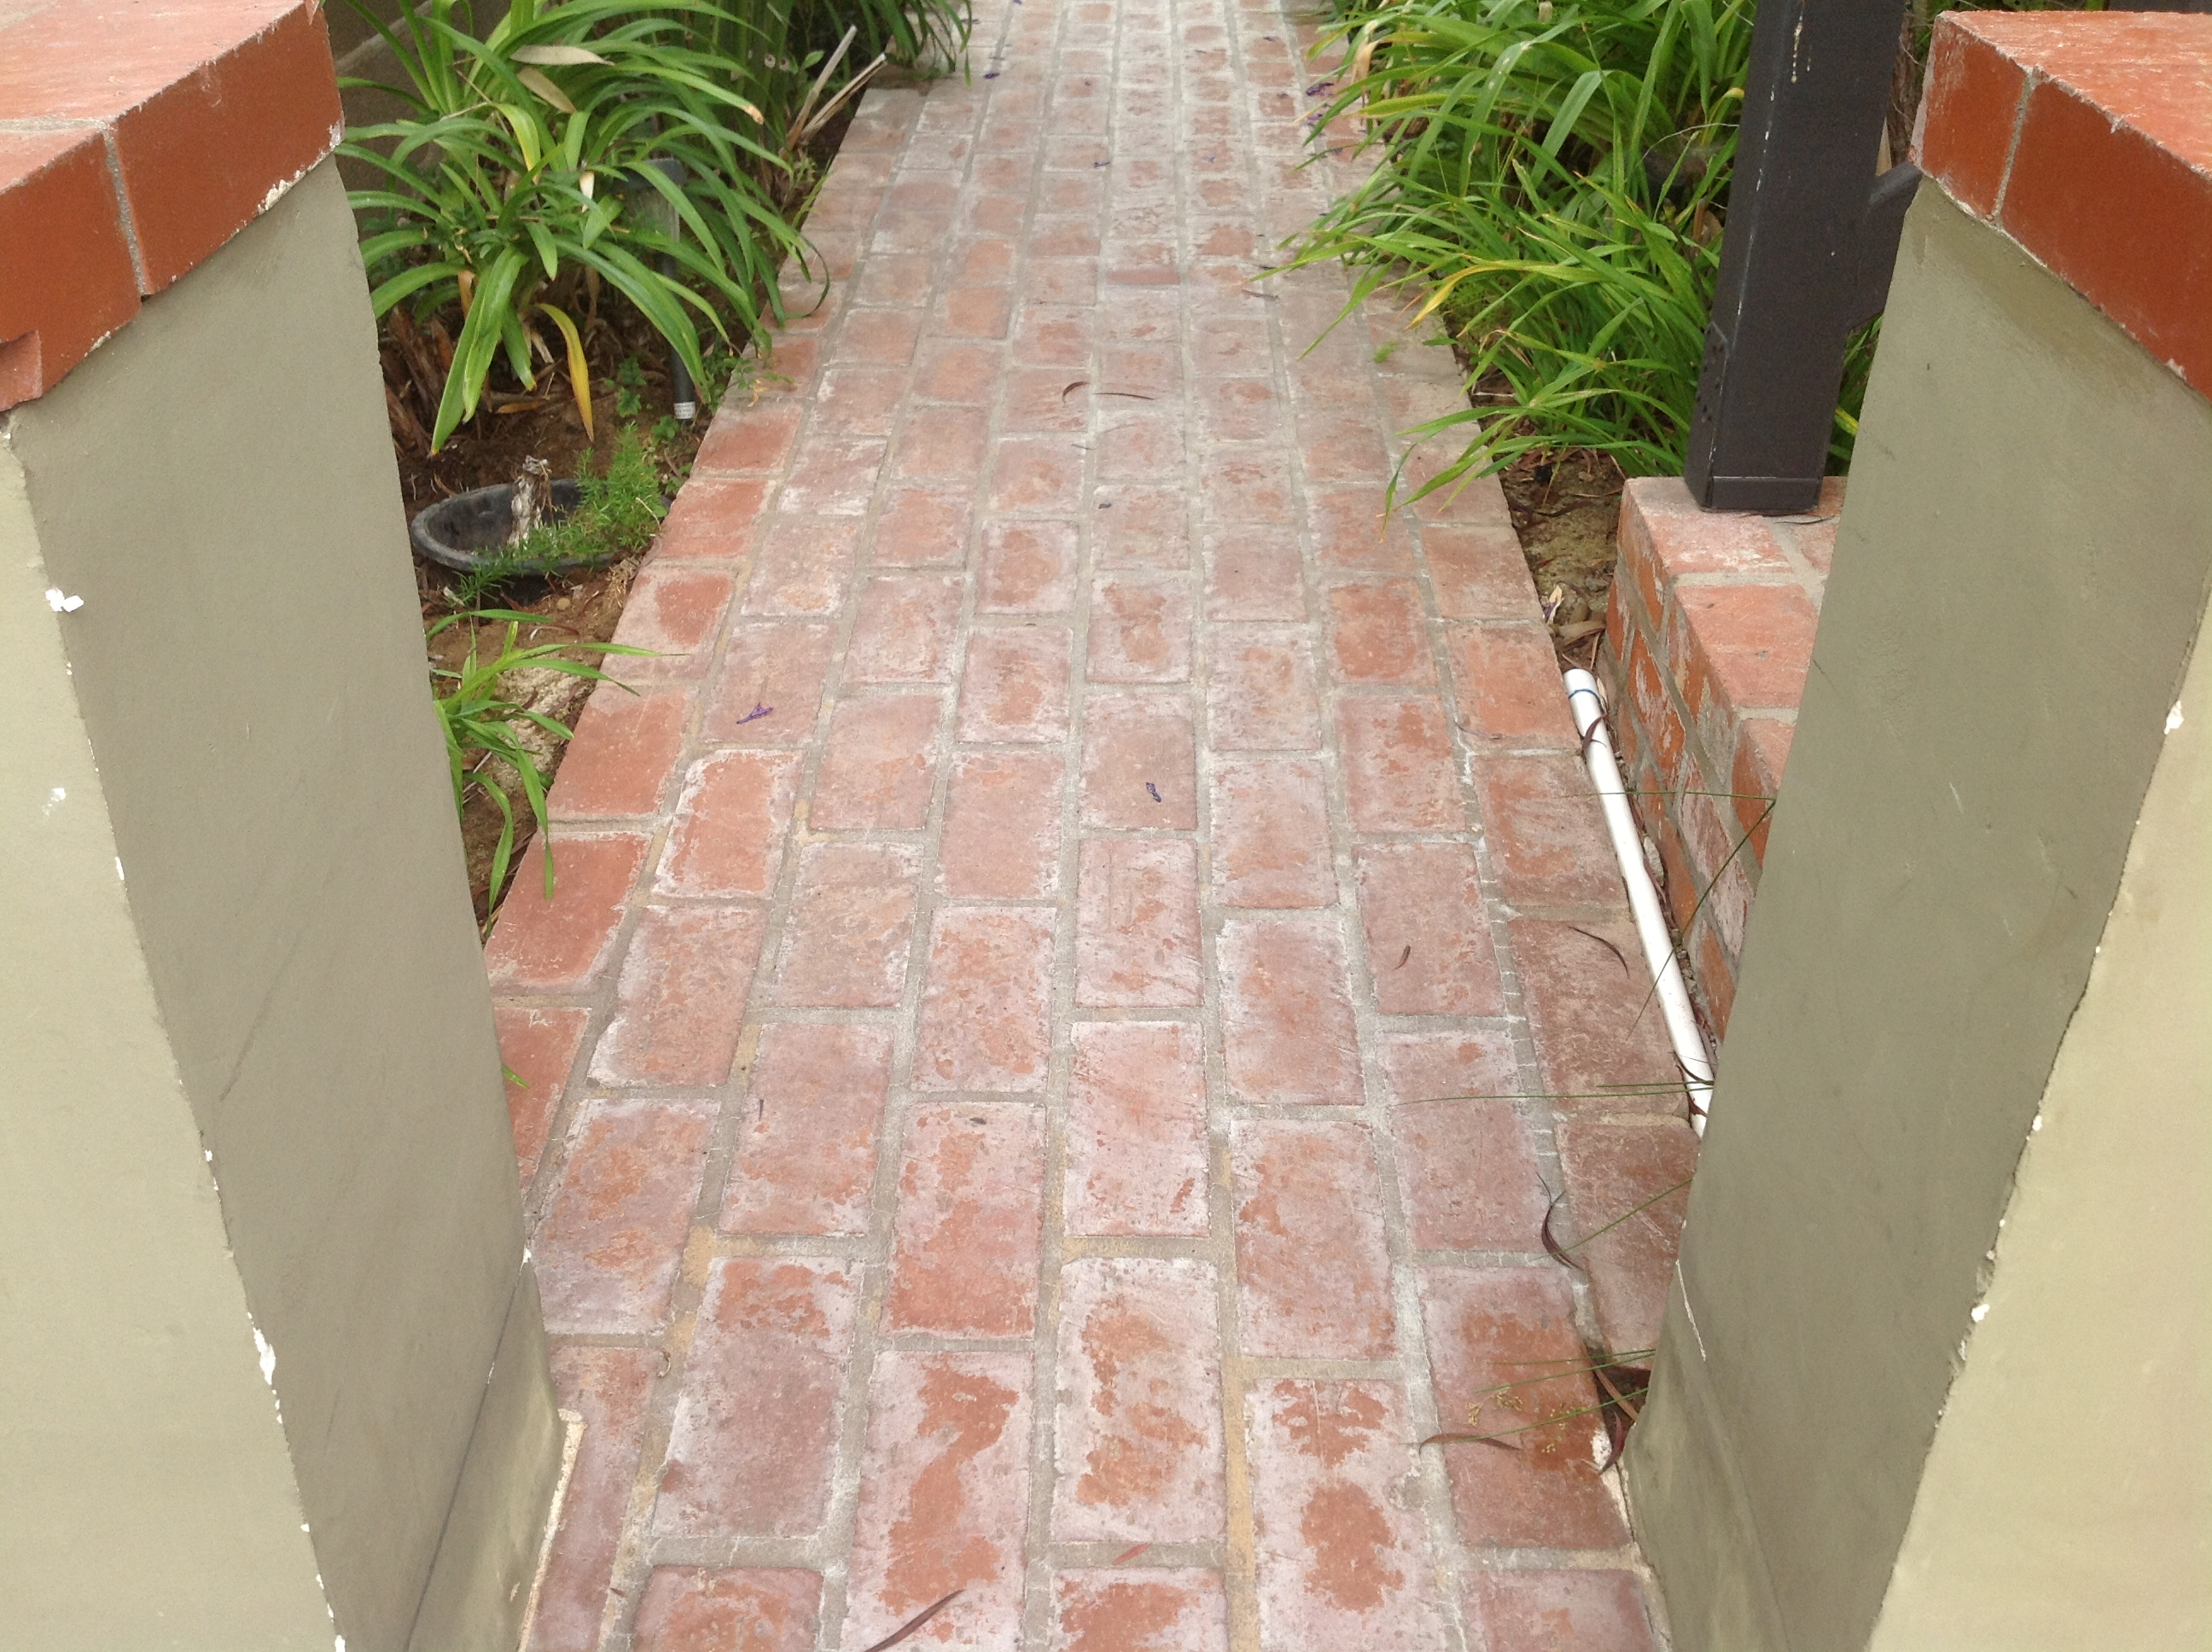 Machines for cleaning mexican tile saltillos slate flagstone buffers sanders steam machines carpet company machines high pressure washers are great at ruining tile pavers and bricks dailygadgetfo Gallery